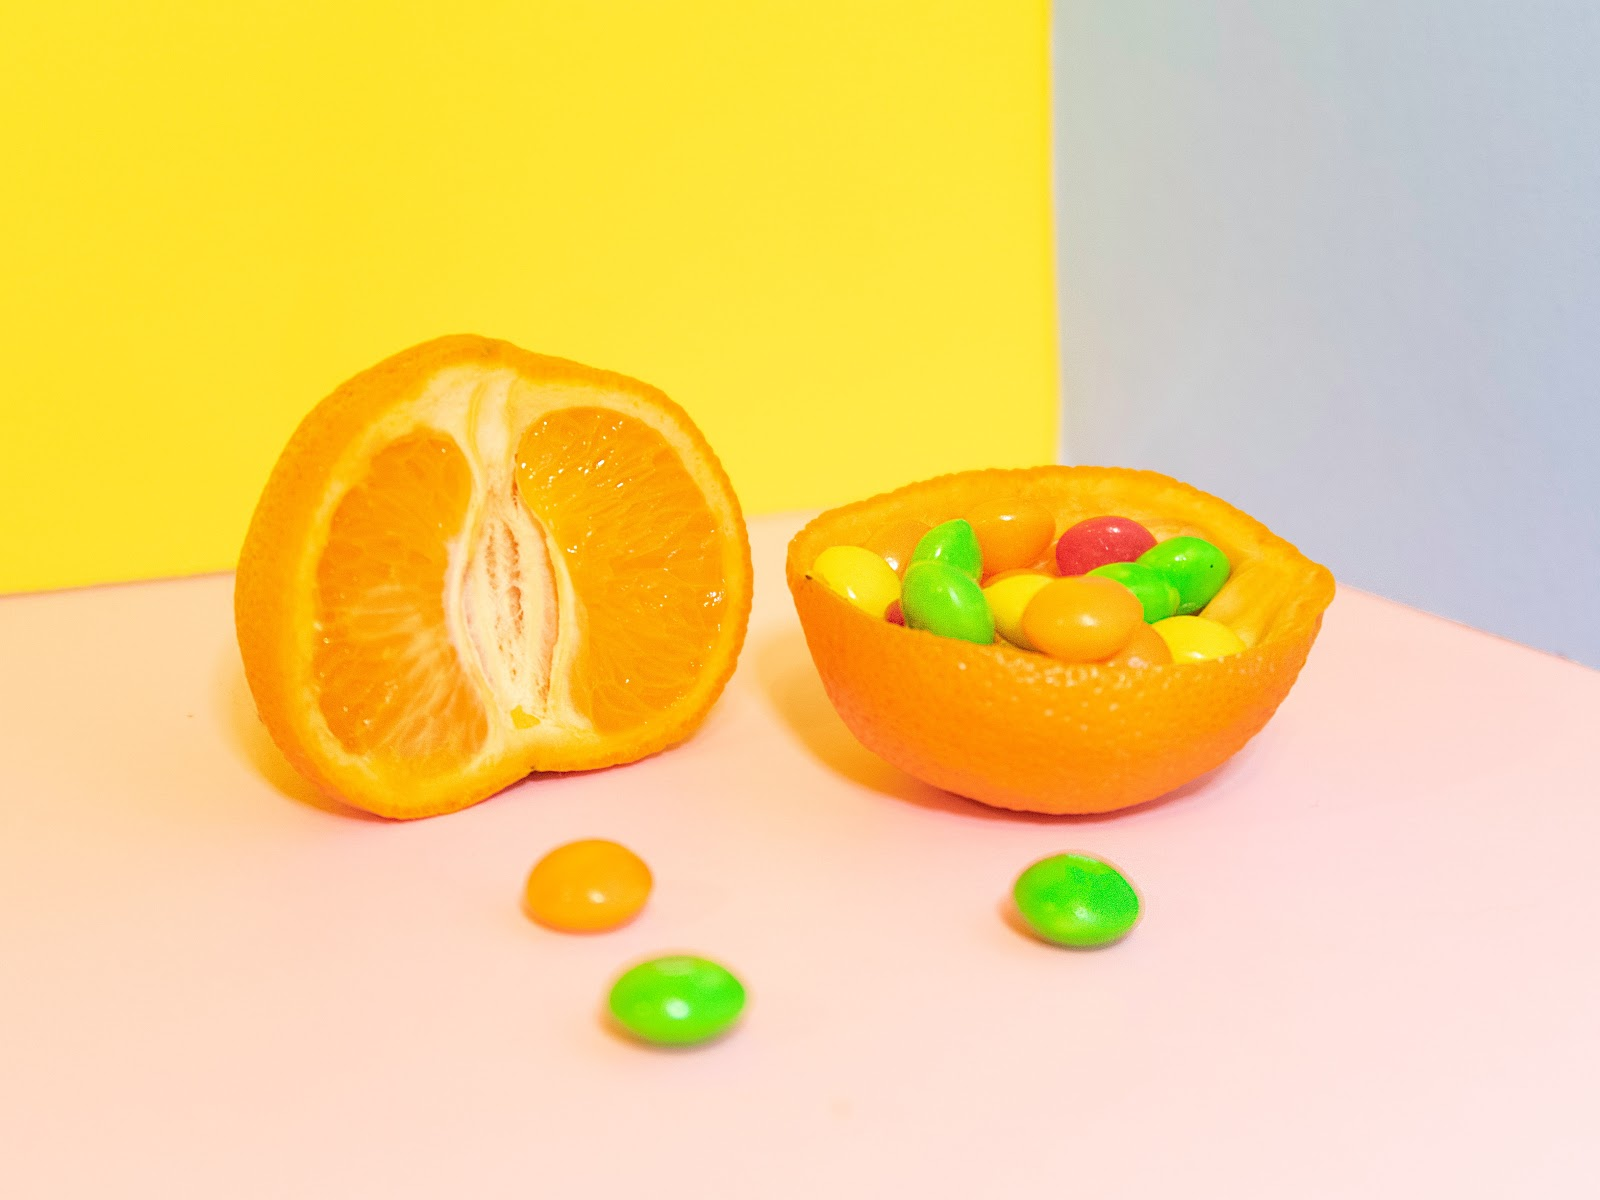 Orange cut in half. One side is filled with candy. On a tri-color muted color backdrop: yellow, pink, and blue.